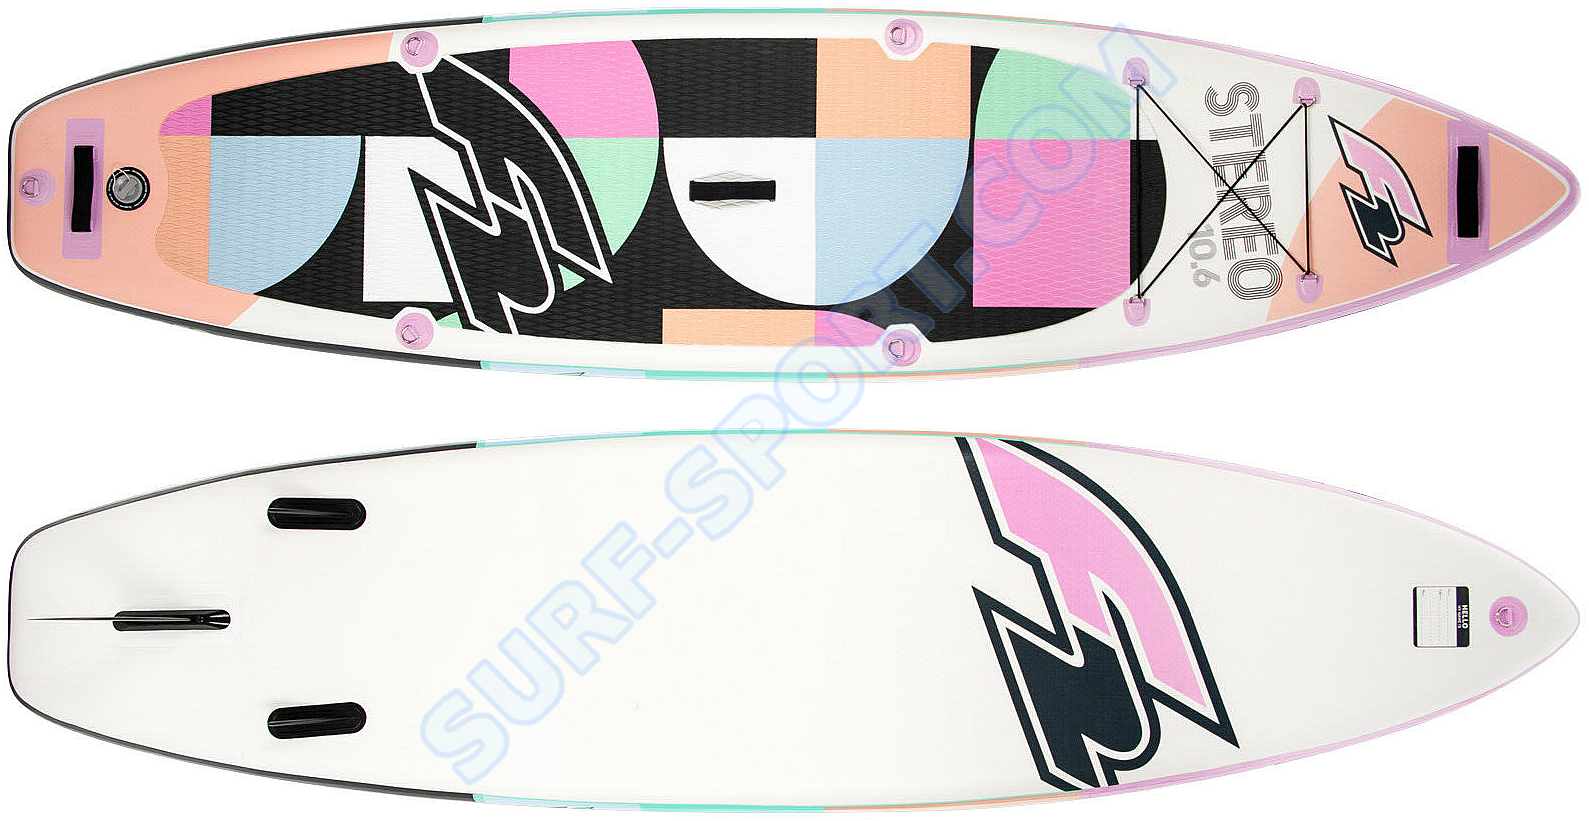 Deska Sup F2 Stereo-10.0 for women-pink-deck and bottom.png